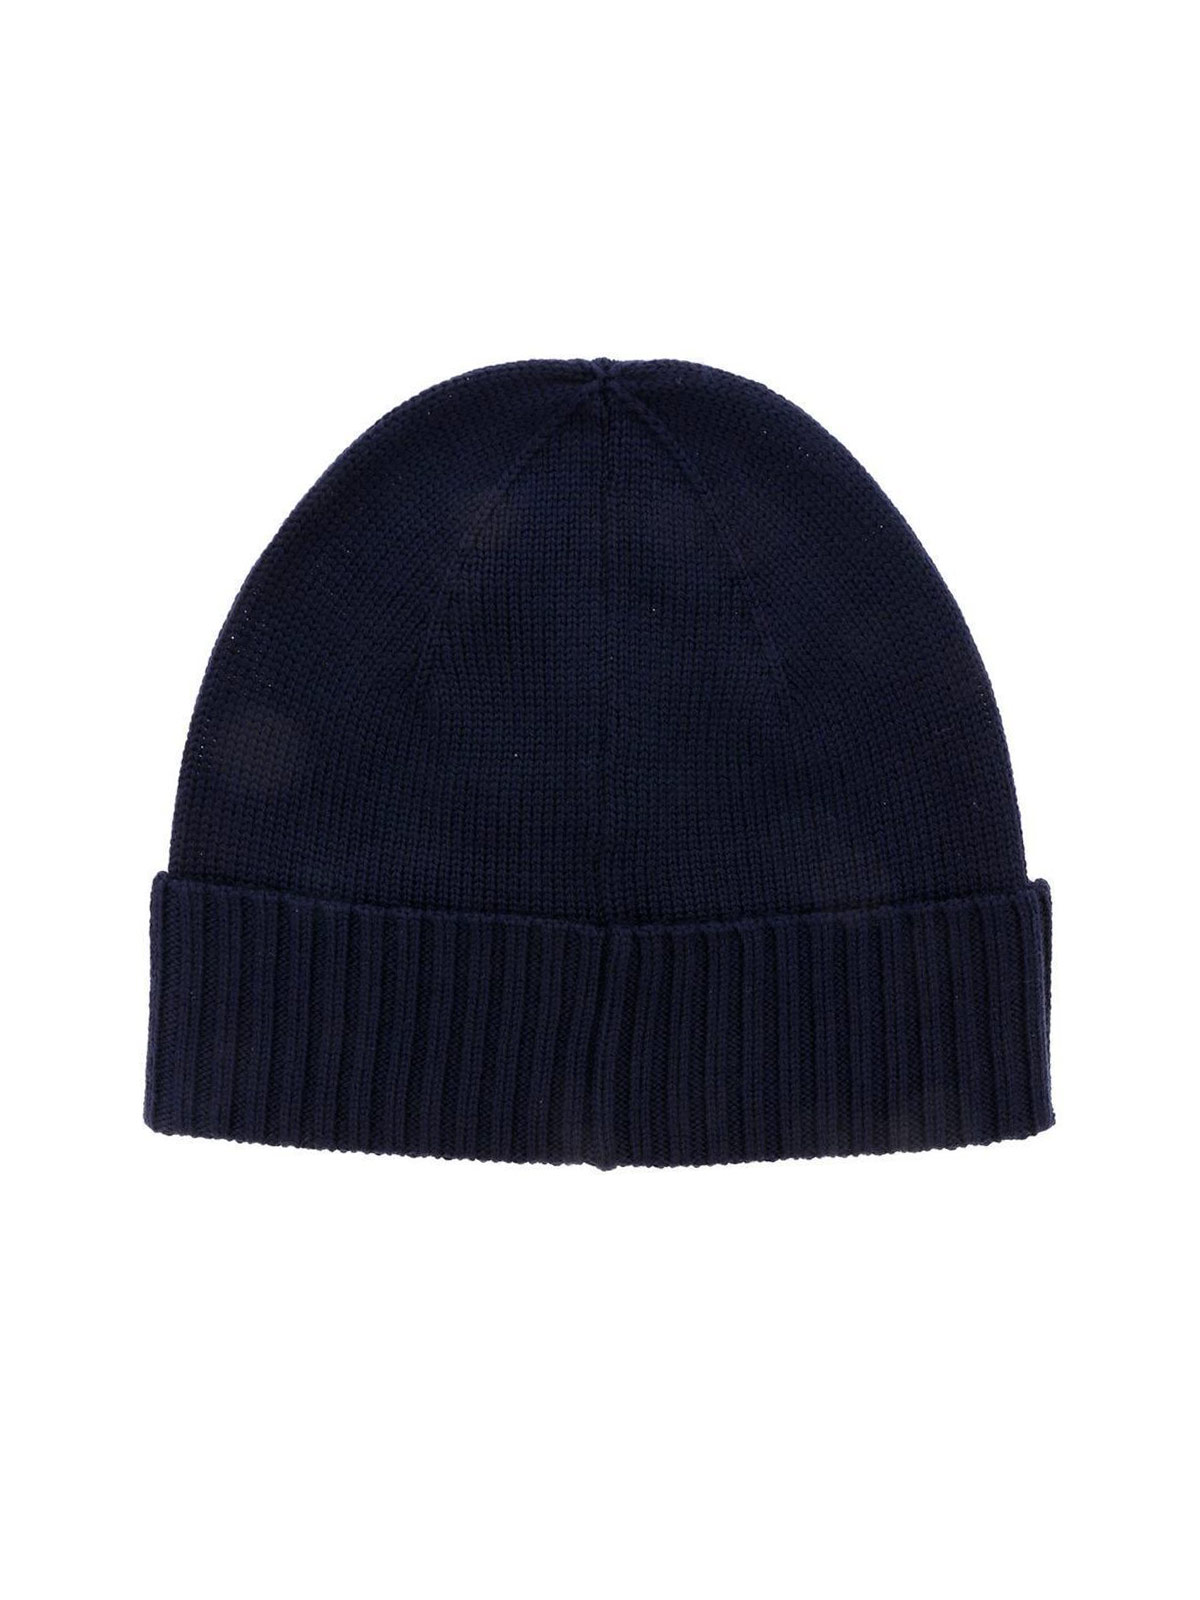 Picture of POLO RALPH LAUREN | Men's Merino Wool Beanie